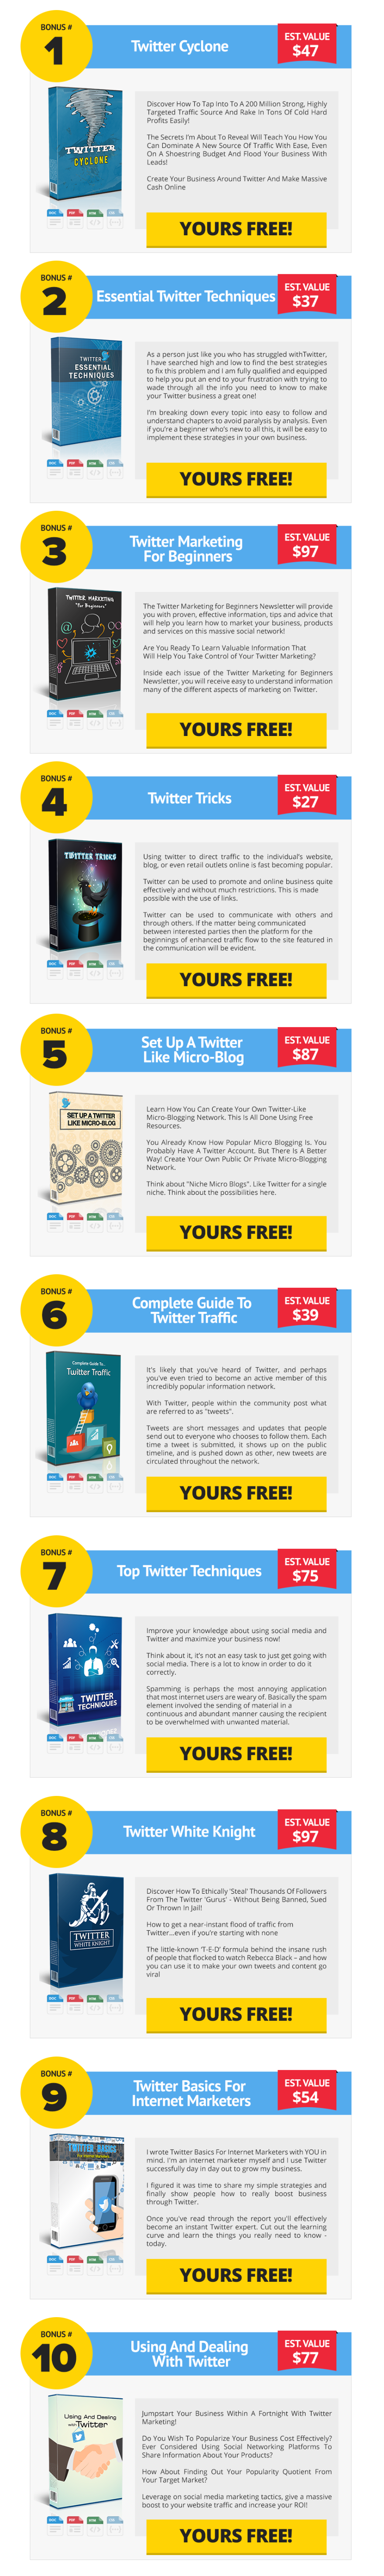 Twitter Marketing Excellence PLR Bonuses